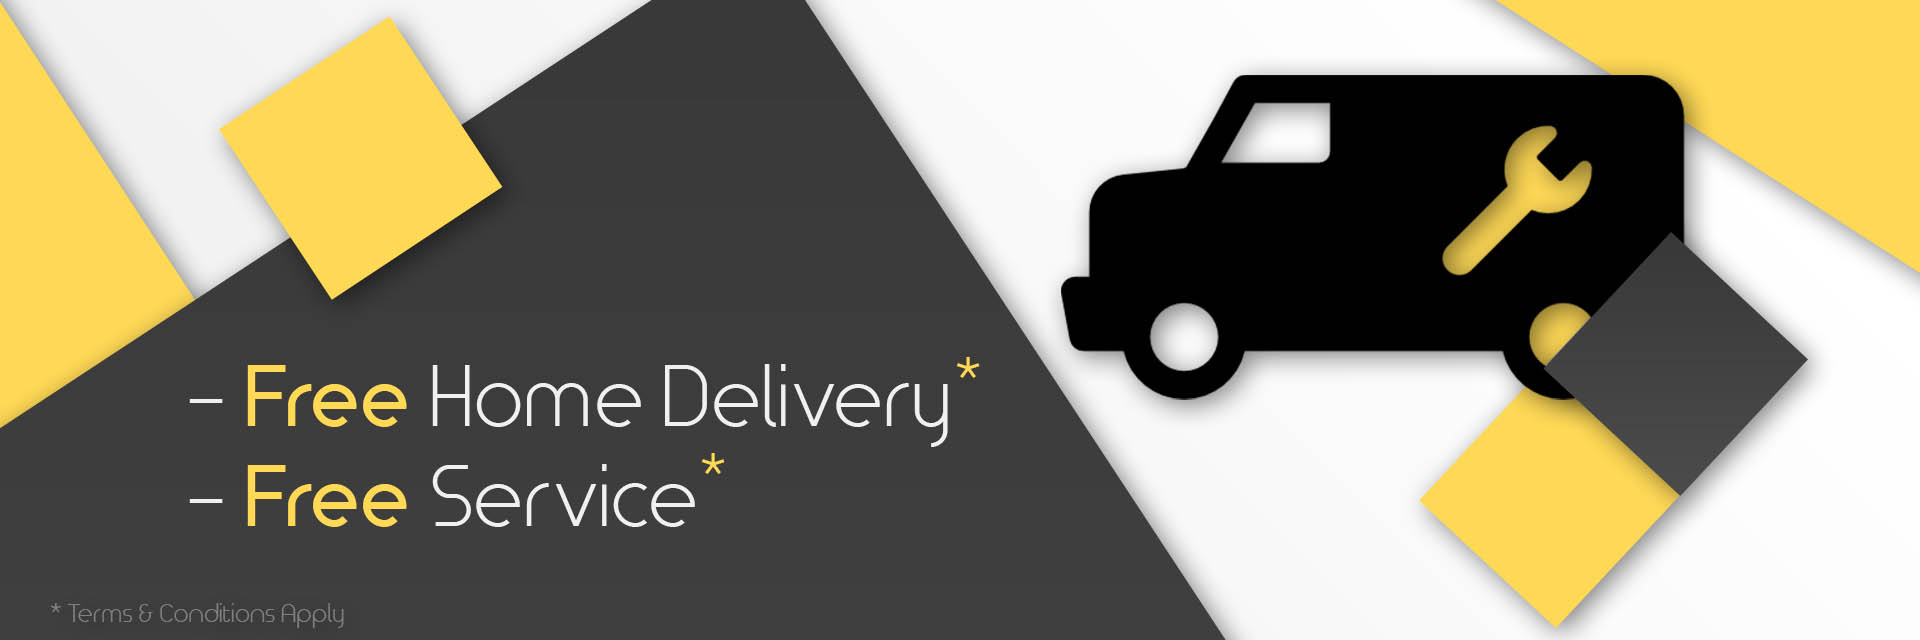 Free Home Delivery and Services